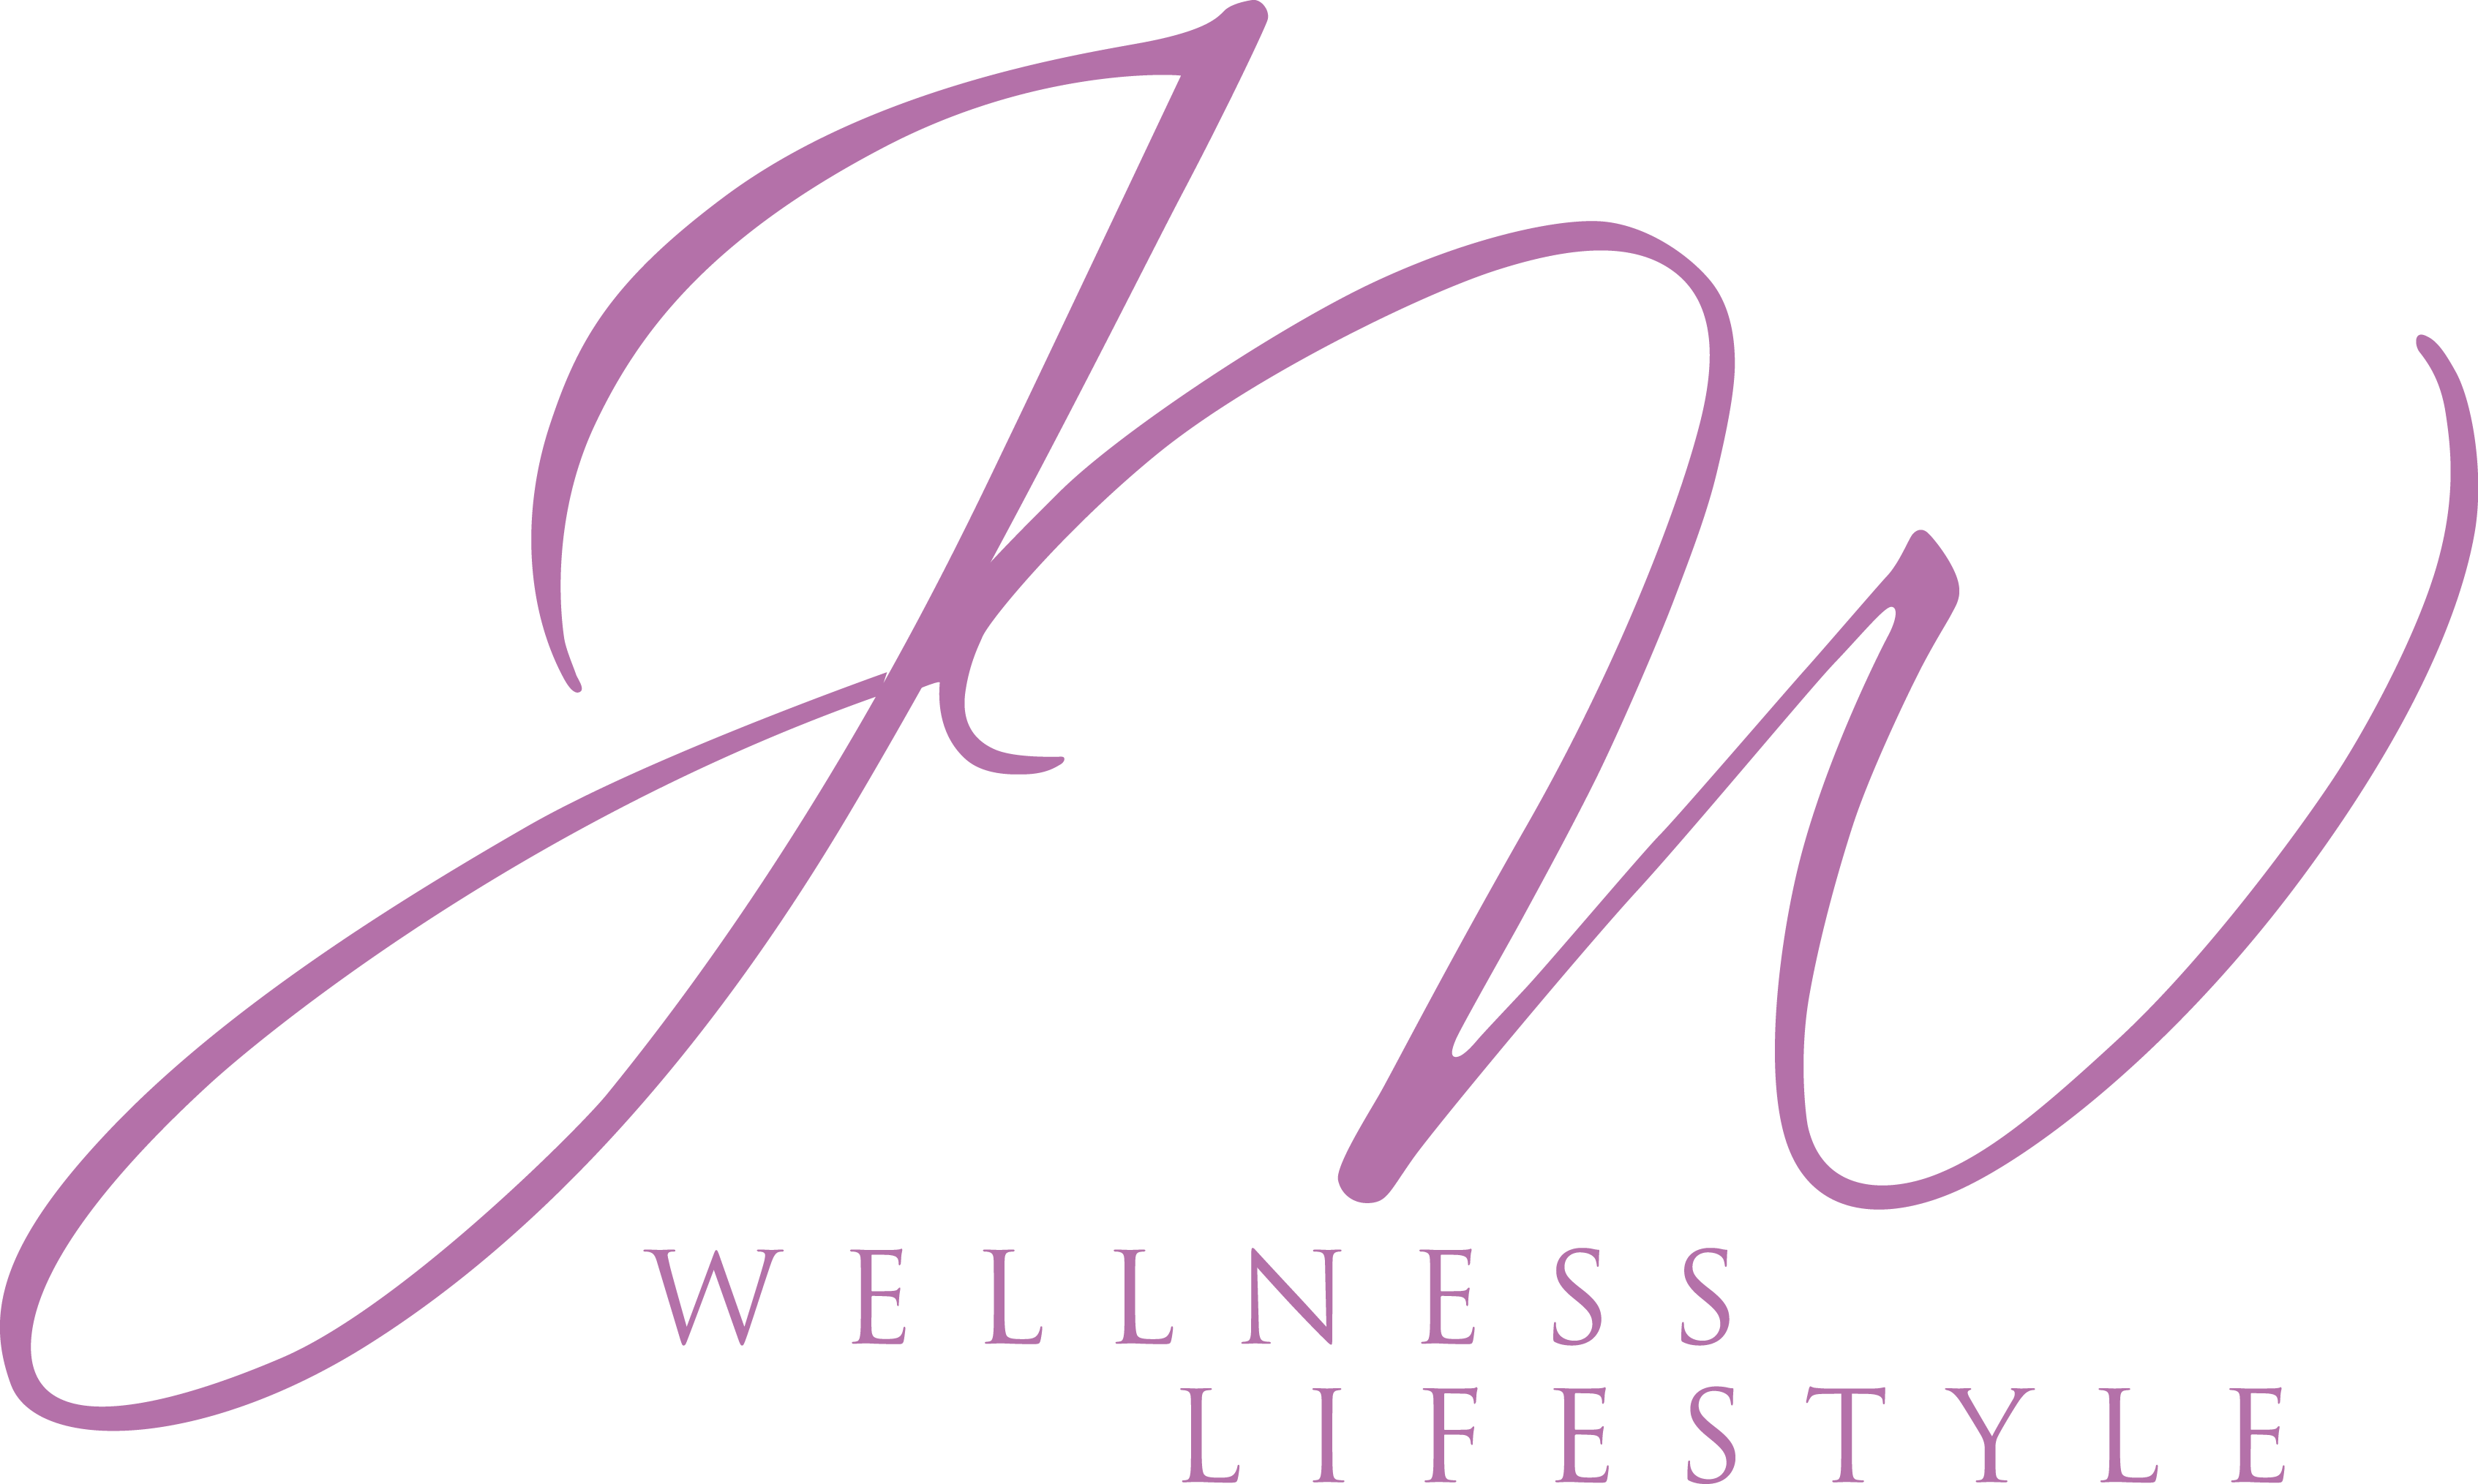 JW Wellness Lifestyle Center